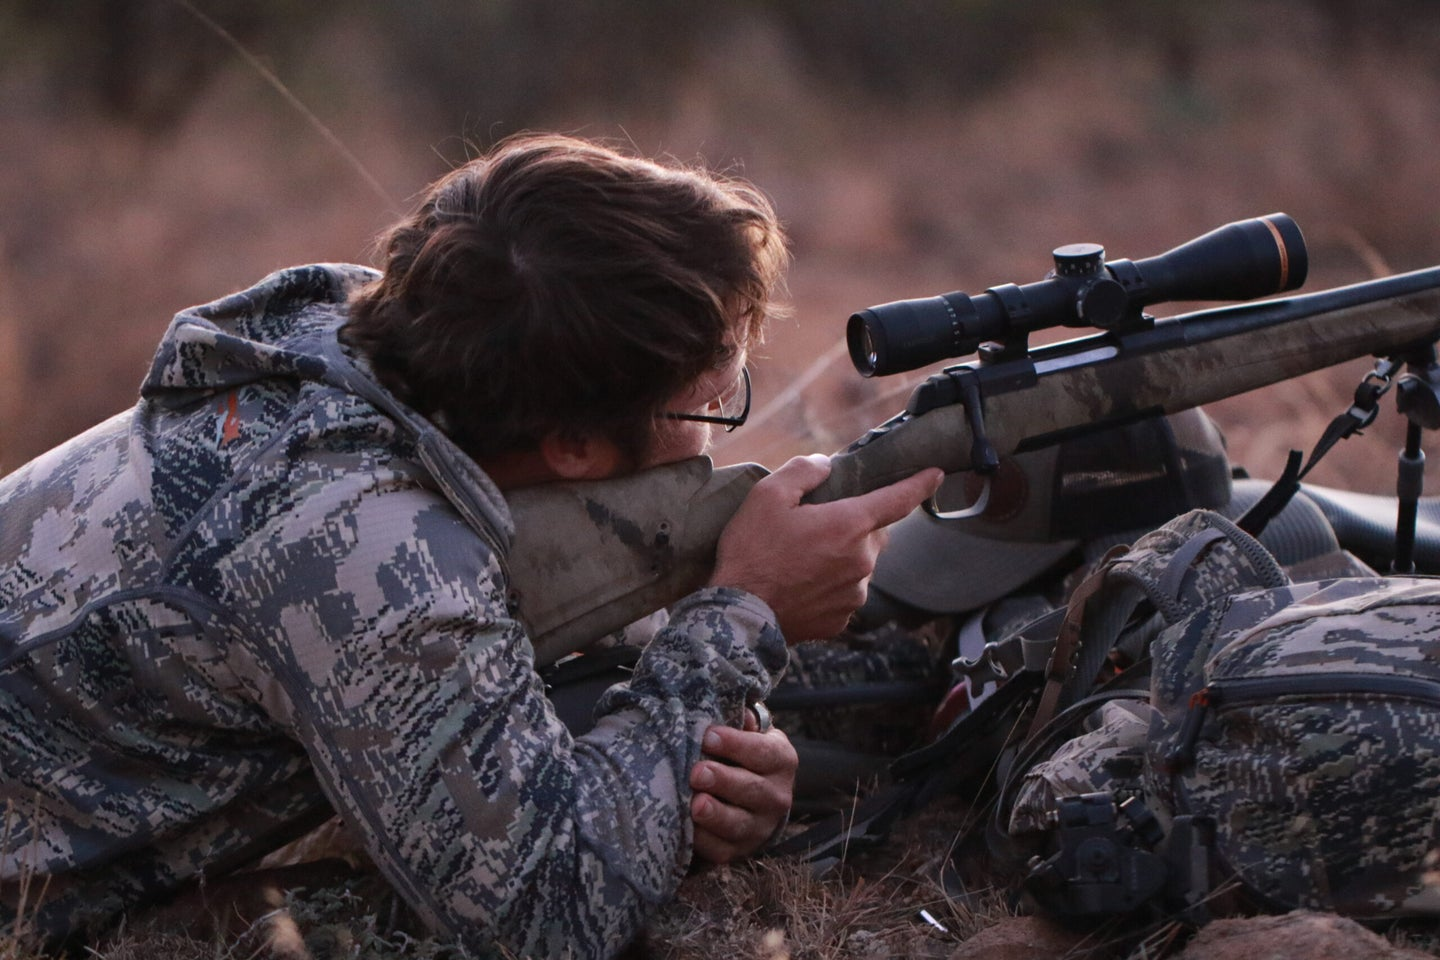 The Leupold Project Hunt contest wants to film one lucky winner this hunting season.